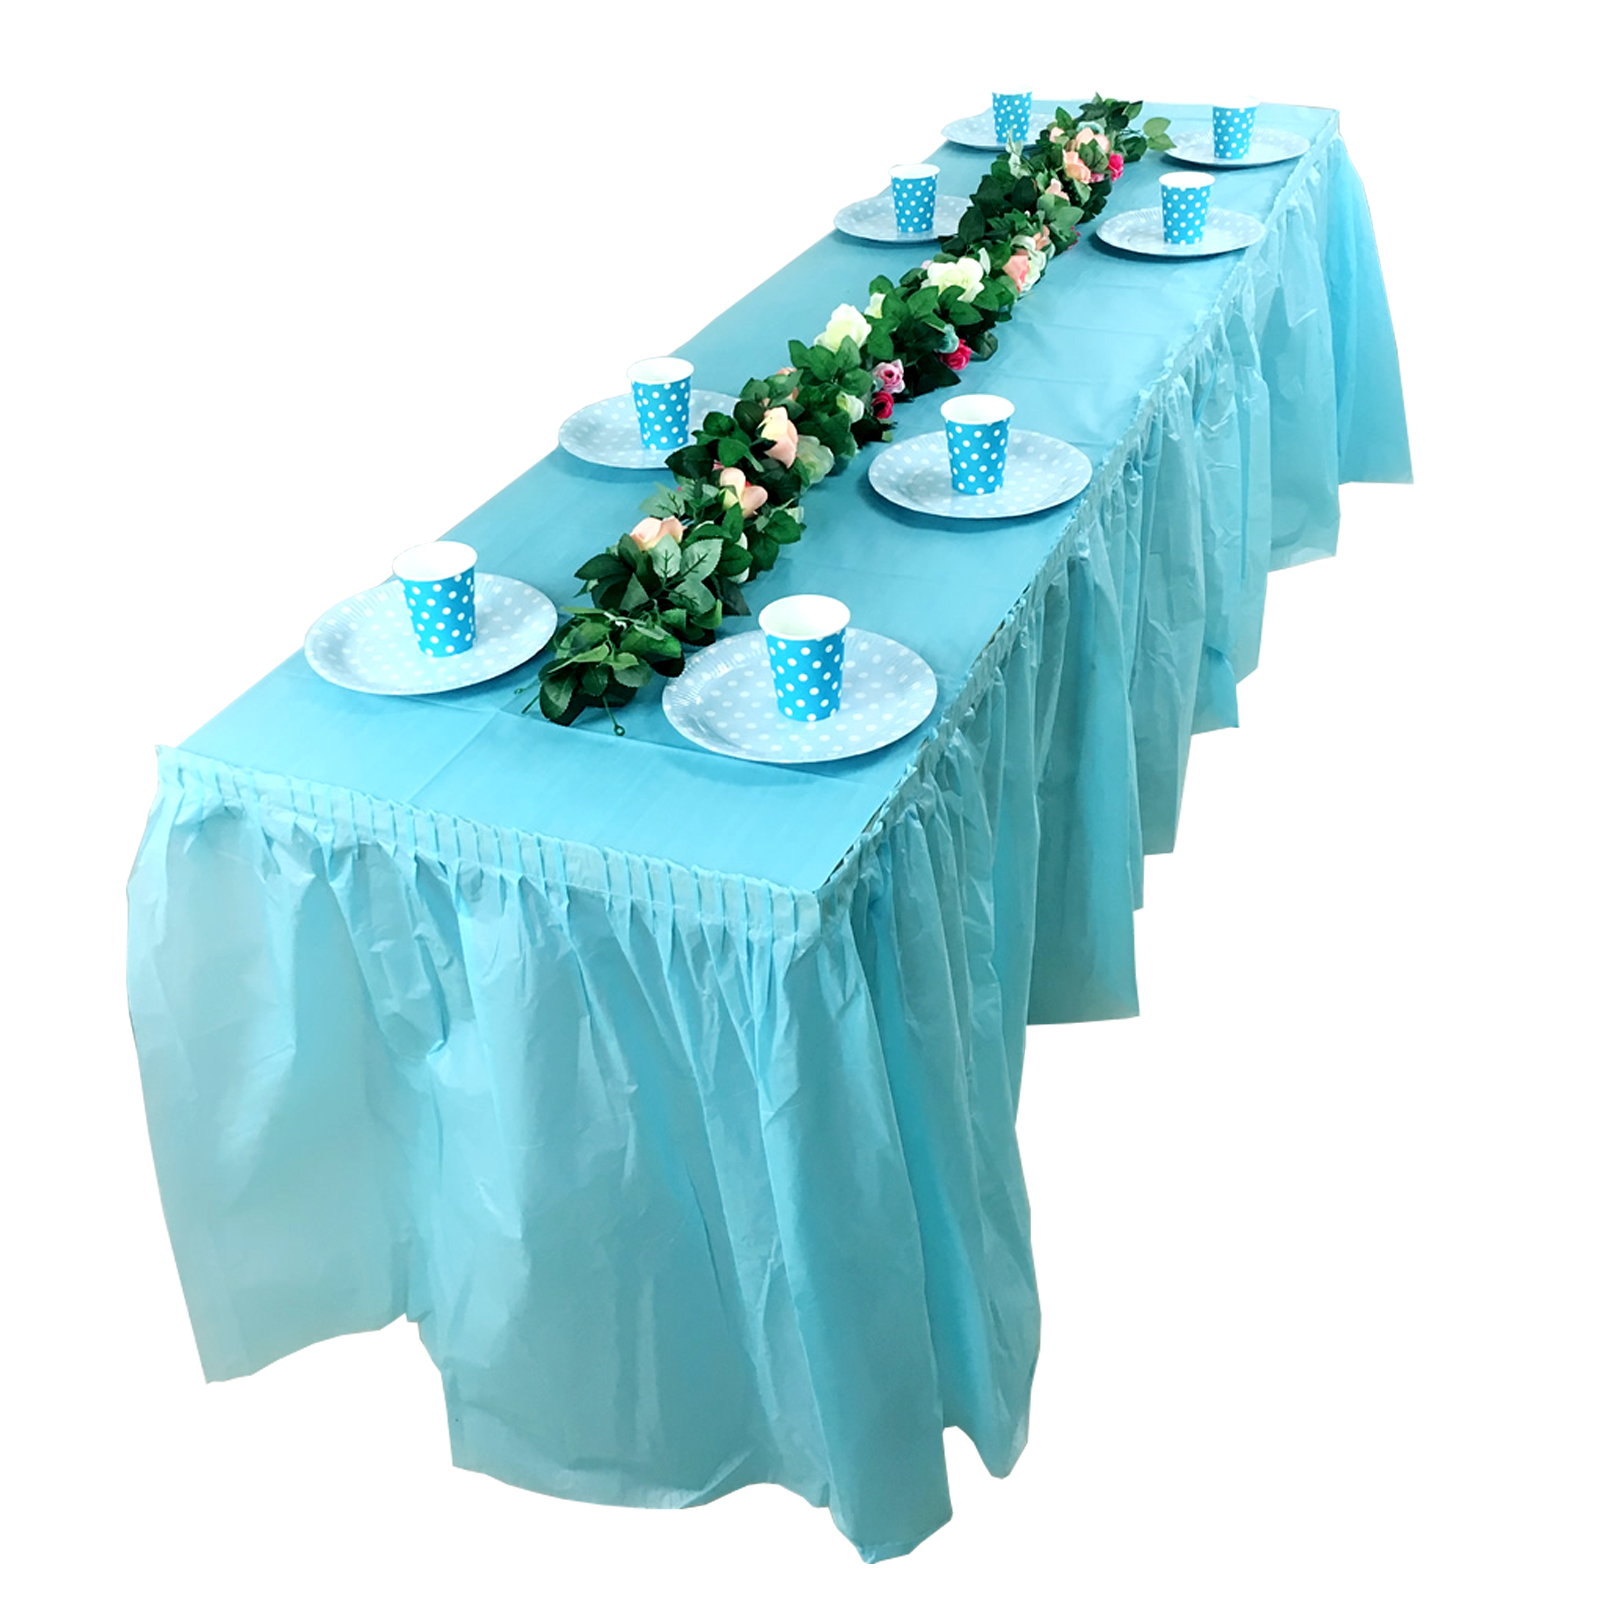 1pcs Disposable PEVA Table Skirt Birthday Party Plastic Table Cover For Wedding Baby Shower Home Table Skirting Decoration